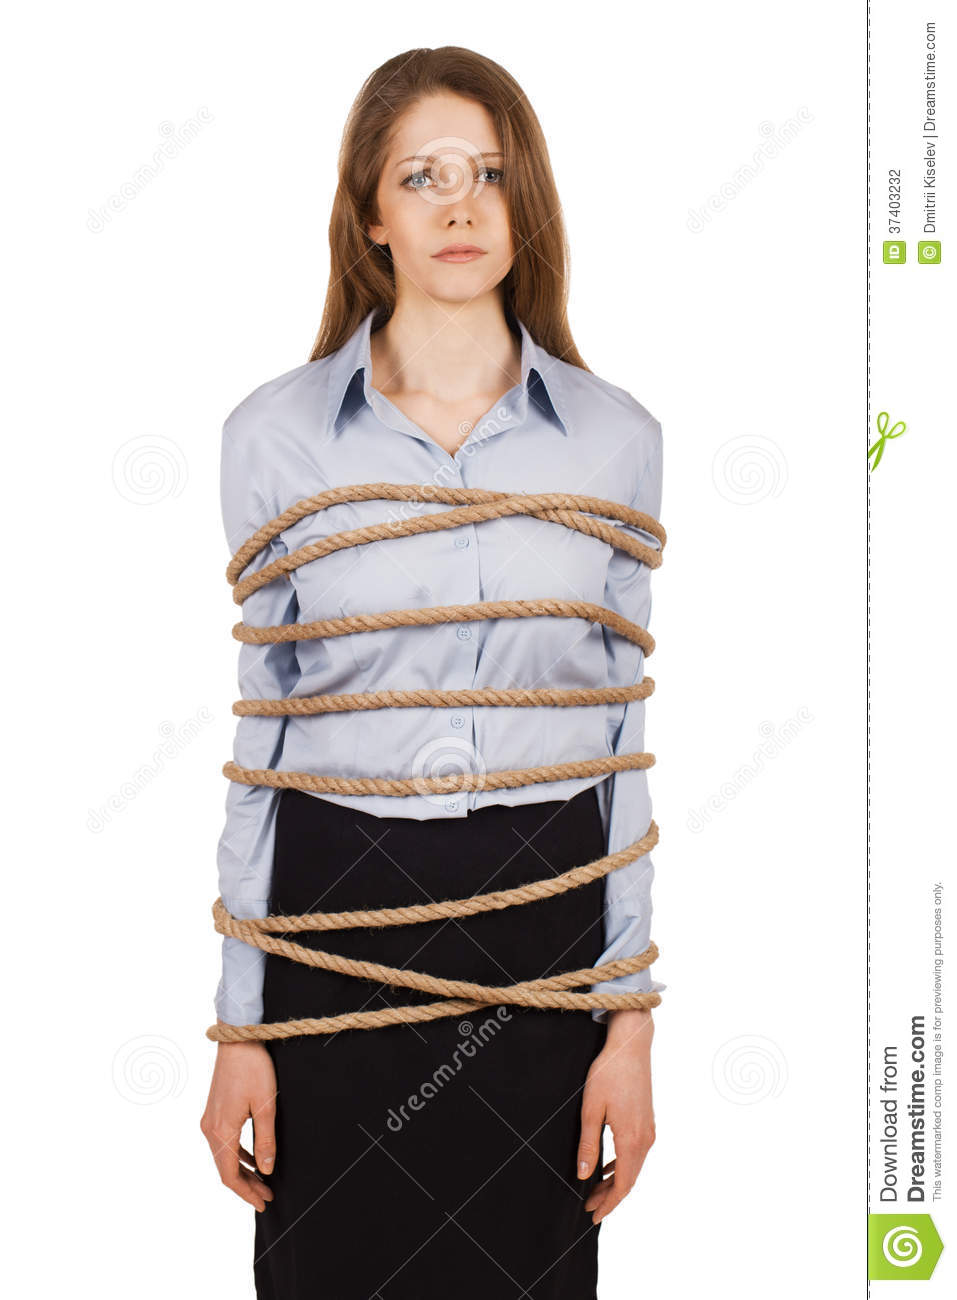 Sad Woman Tied Strong Rope Young Business Up